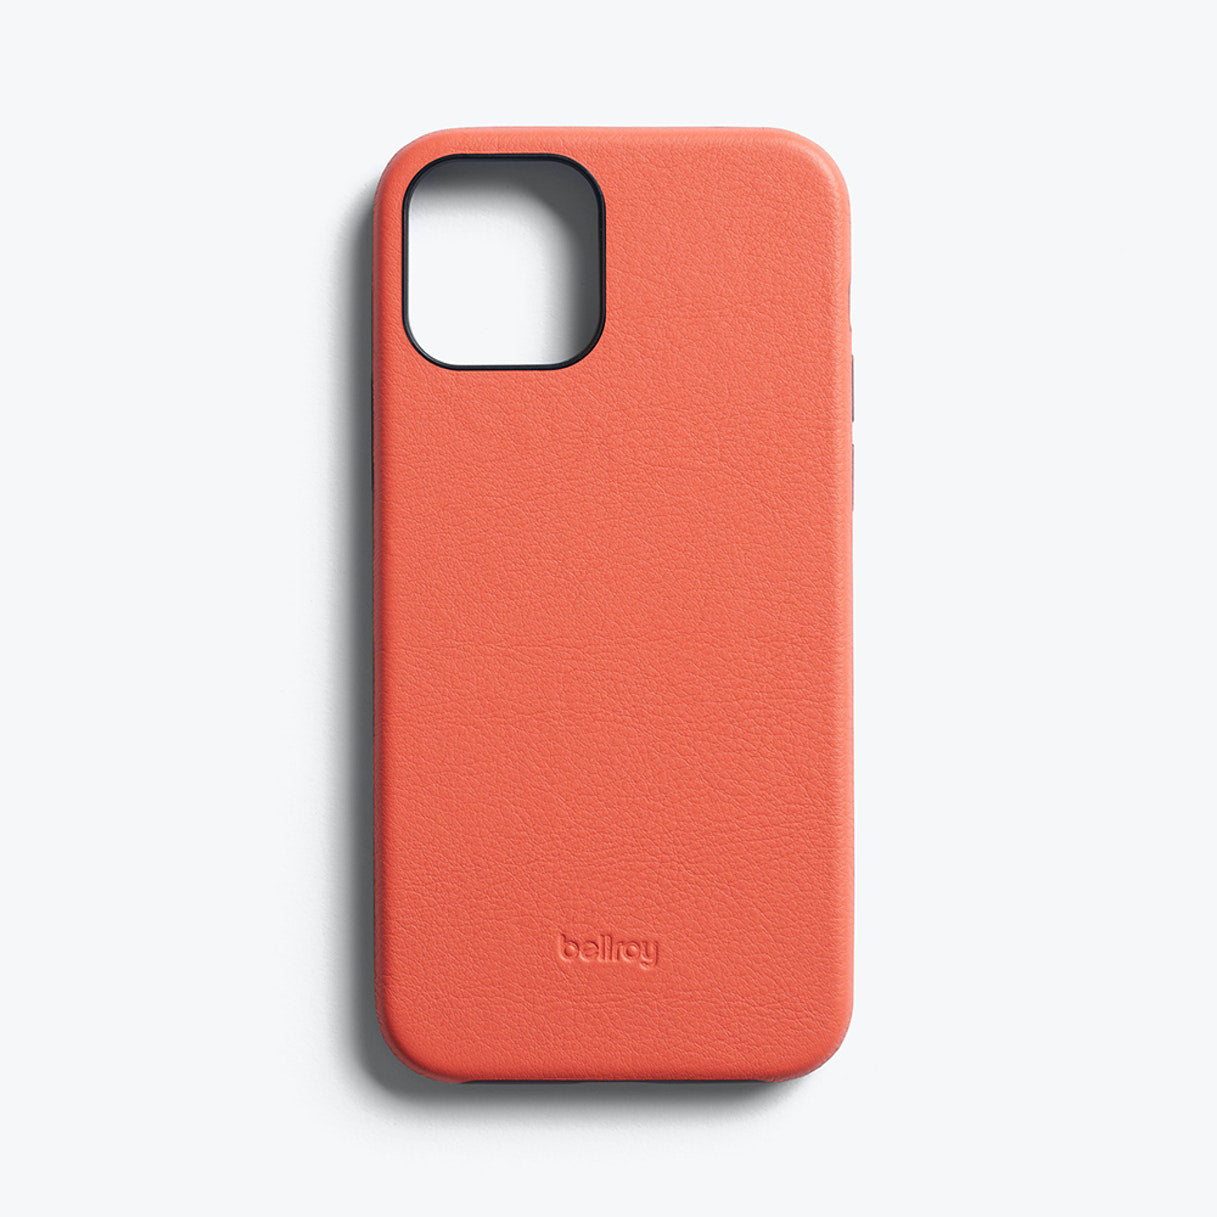 Bellroy Slim Genuine Leather Case For iPhone iPhone 12 / 12 Pro - CORAL